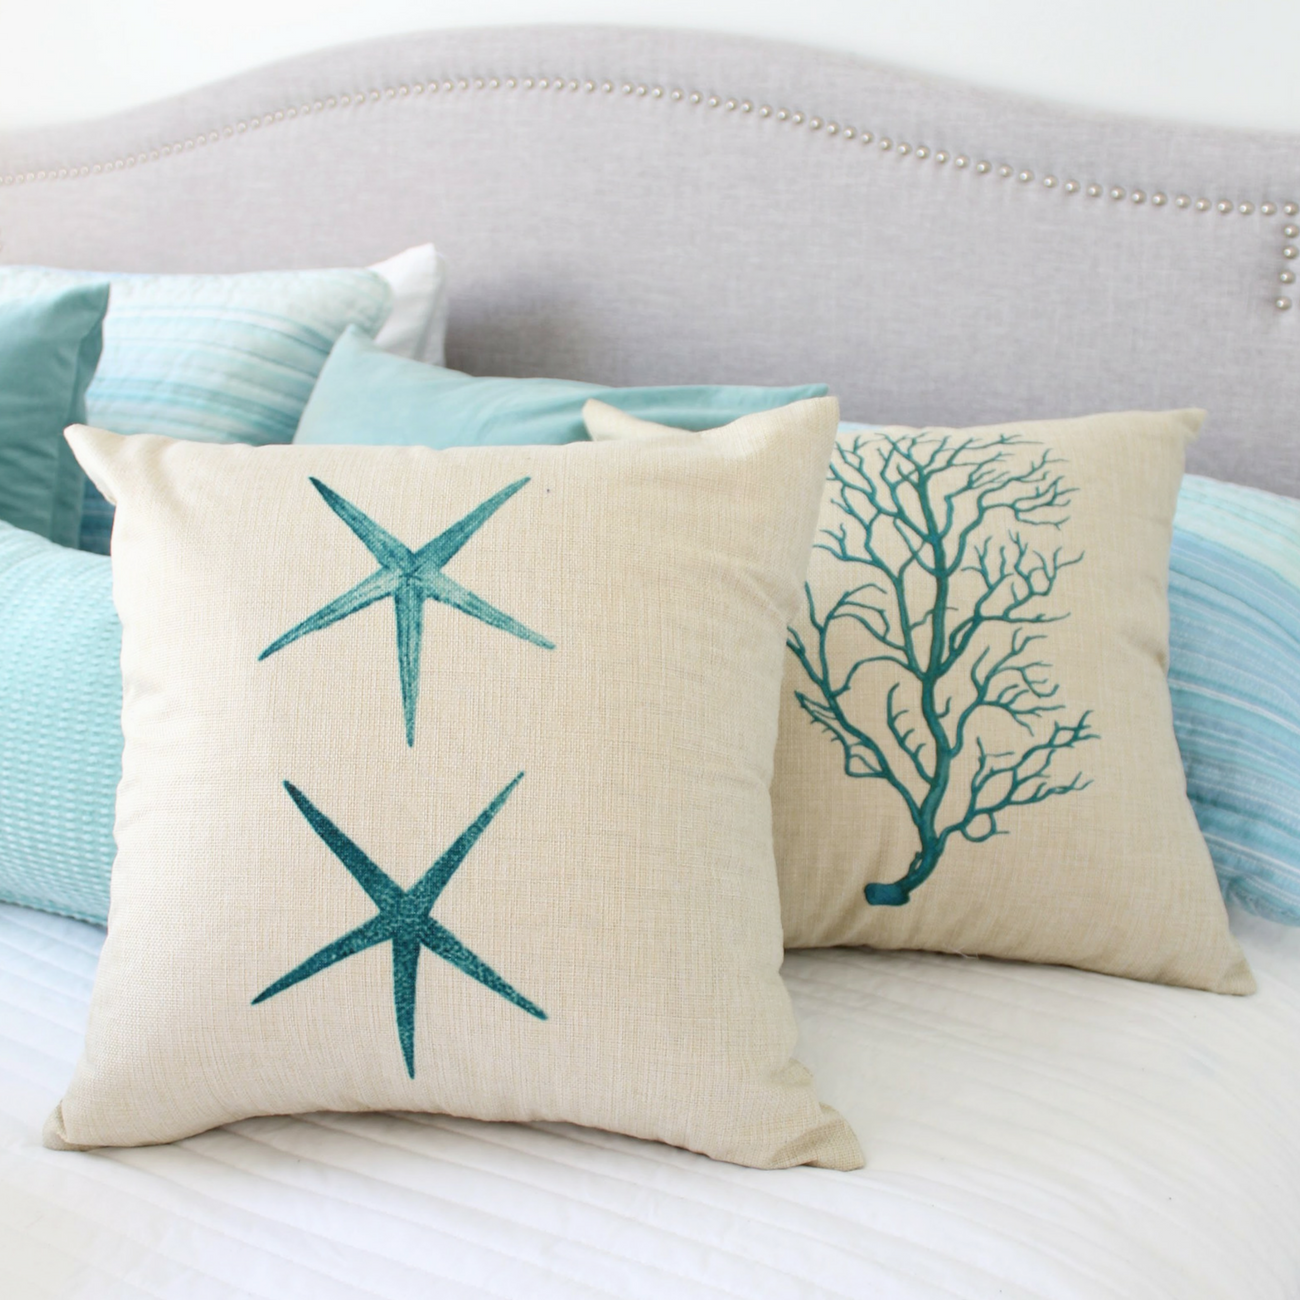 8 Ways To Hide Your Tv In Plain Sight: How To Store Seasonal Pillows By Hiding Them In Plain